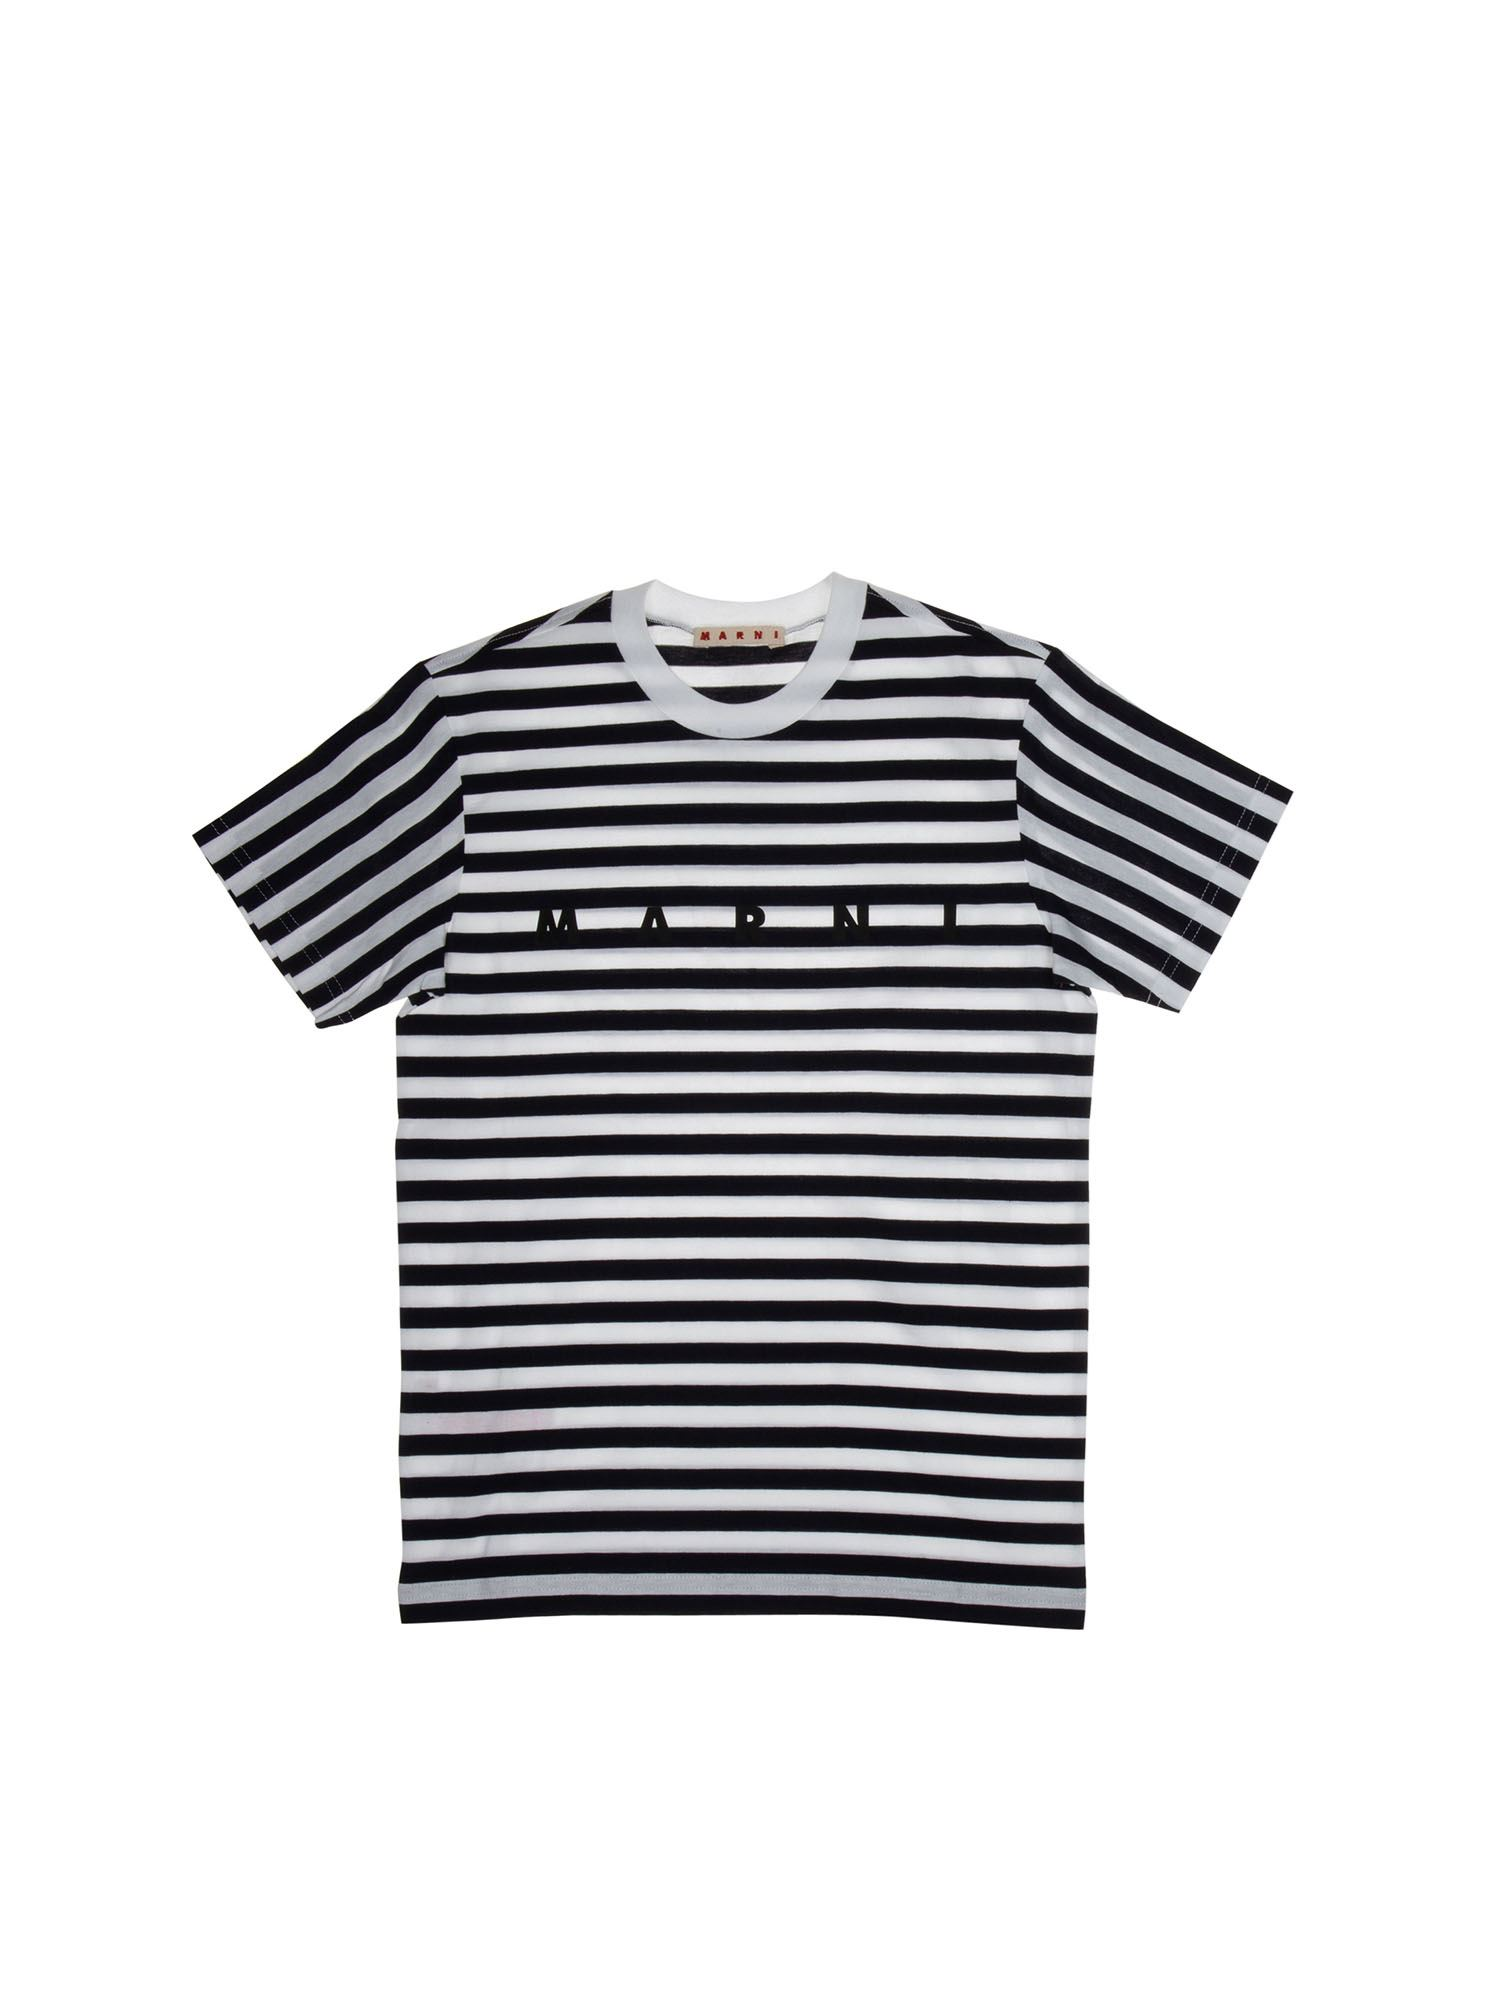 Marni KIDS STRIPED T-SHIRT IN BLUE AND WHITE